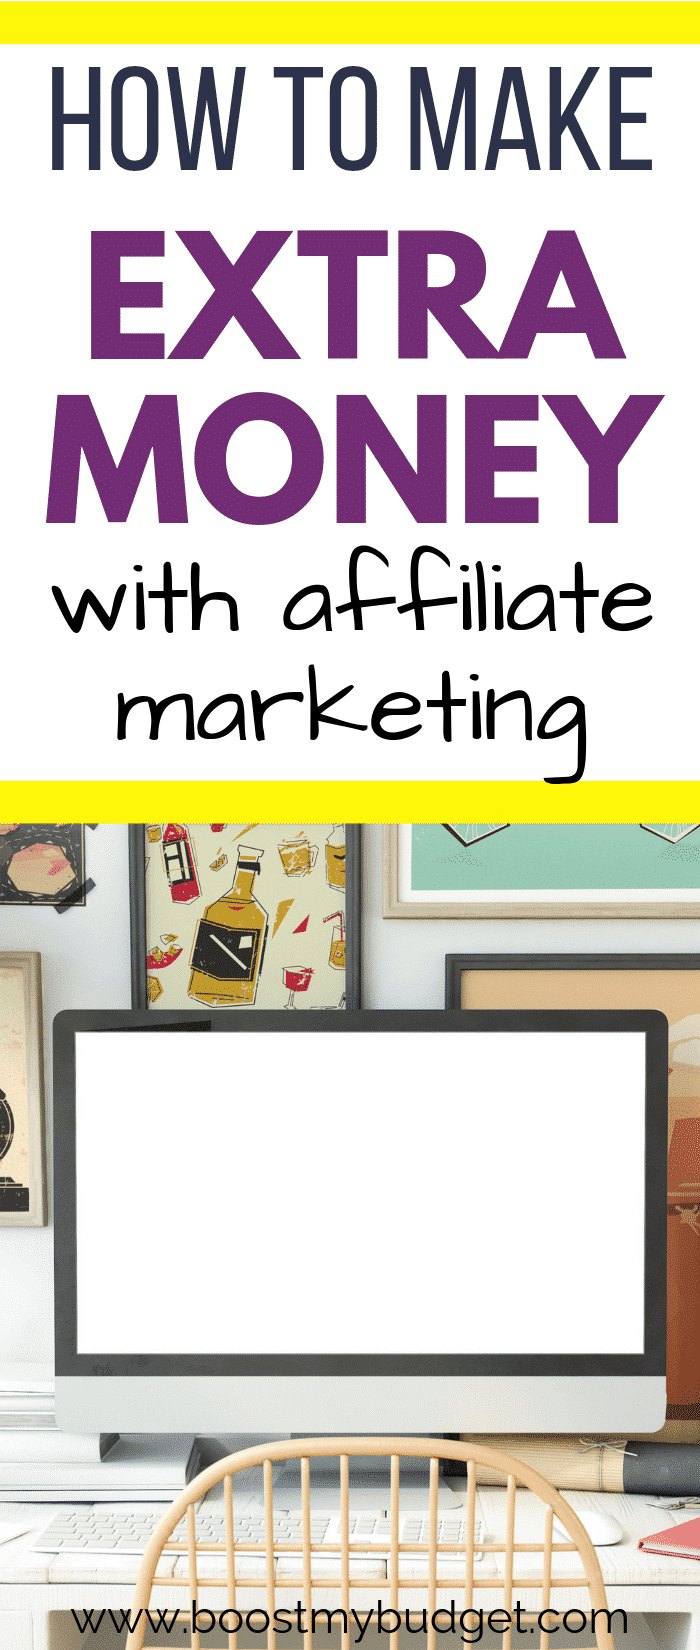 Wondering about making money online with affiliate marketing? Yes, you can do affiliate marketing without a blog! Make money by sharing your affiliate links on Pinterest and social media. This guide shows you how!